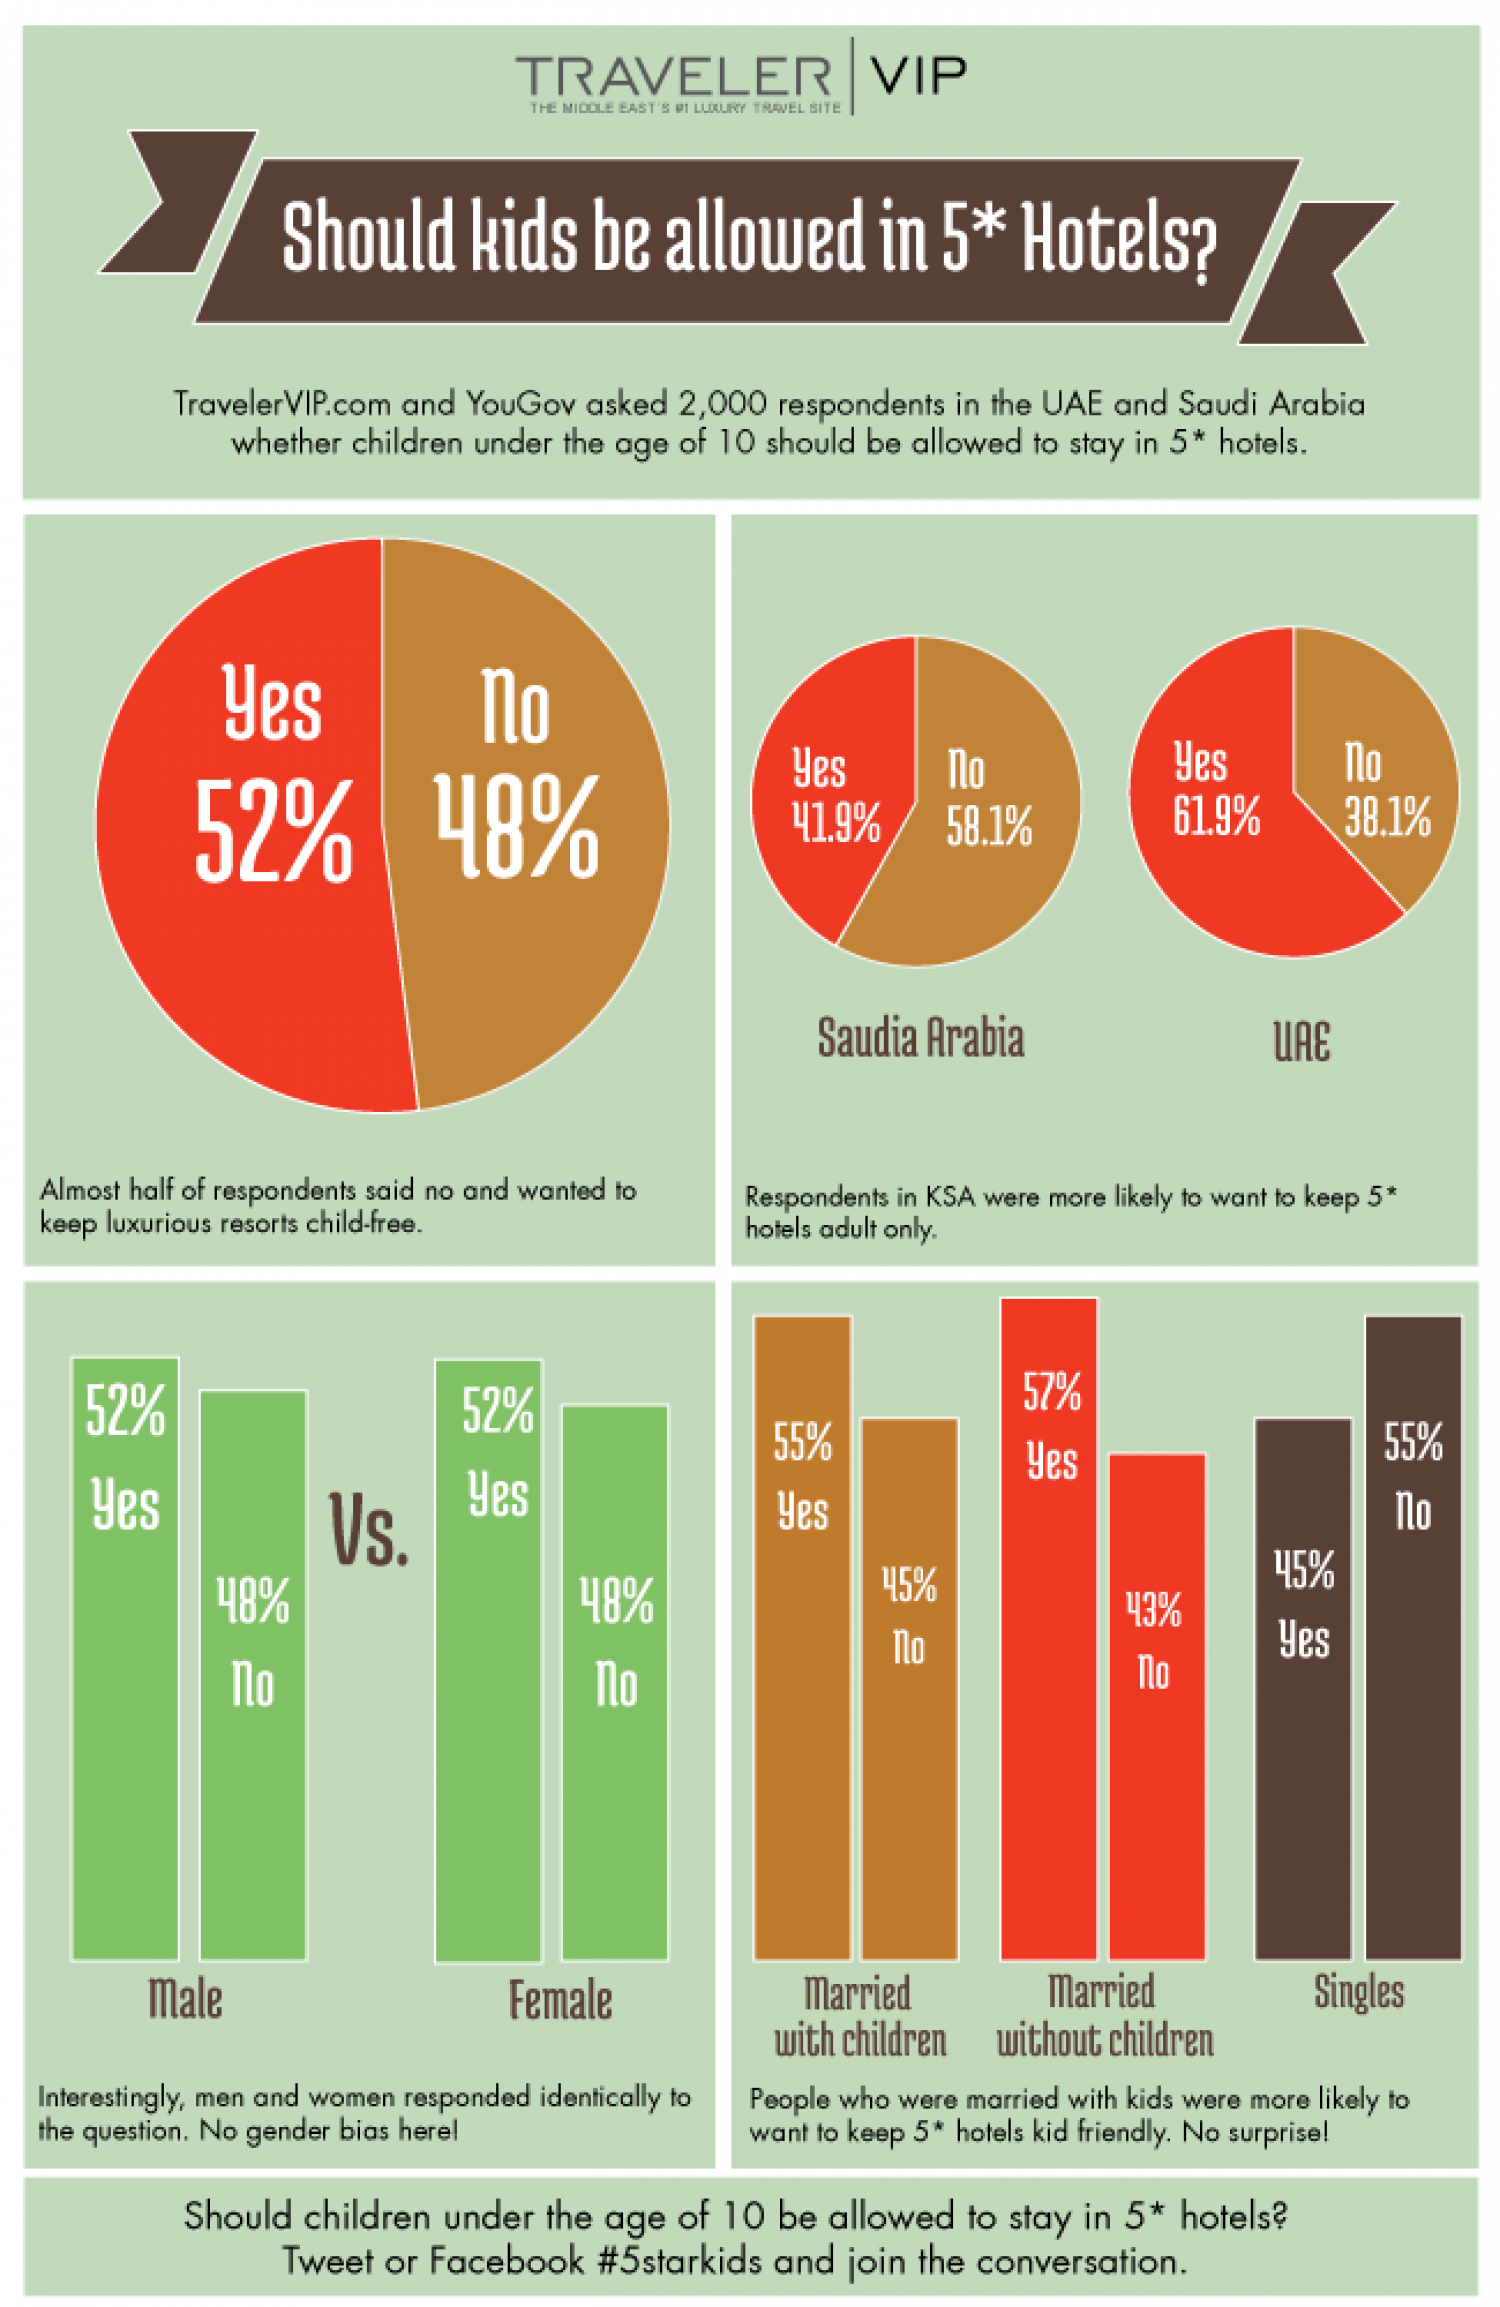 Should Kids Be Allowed In 5* Hotels? Infographic